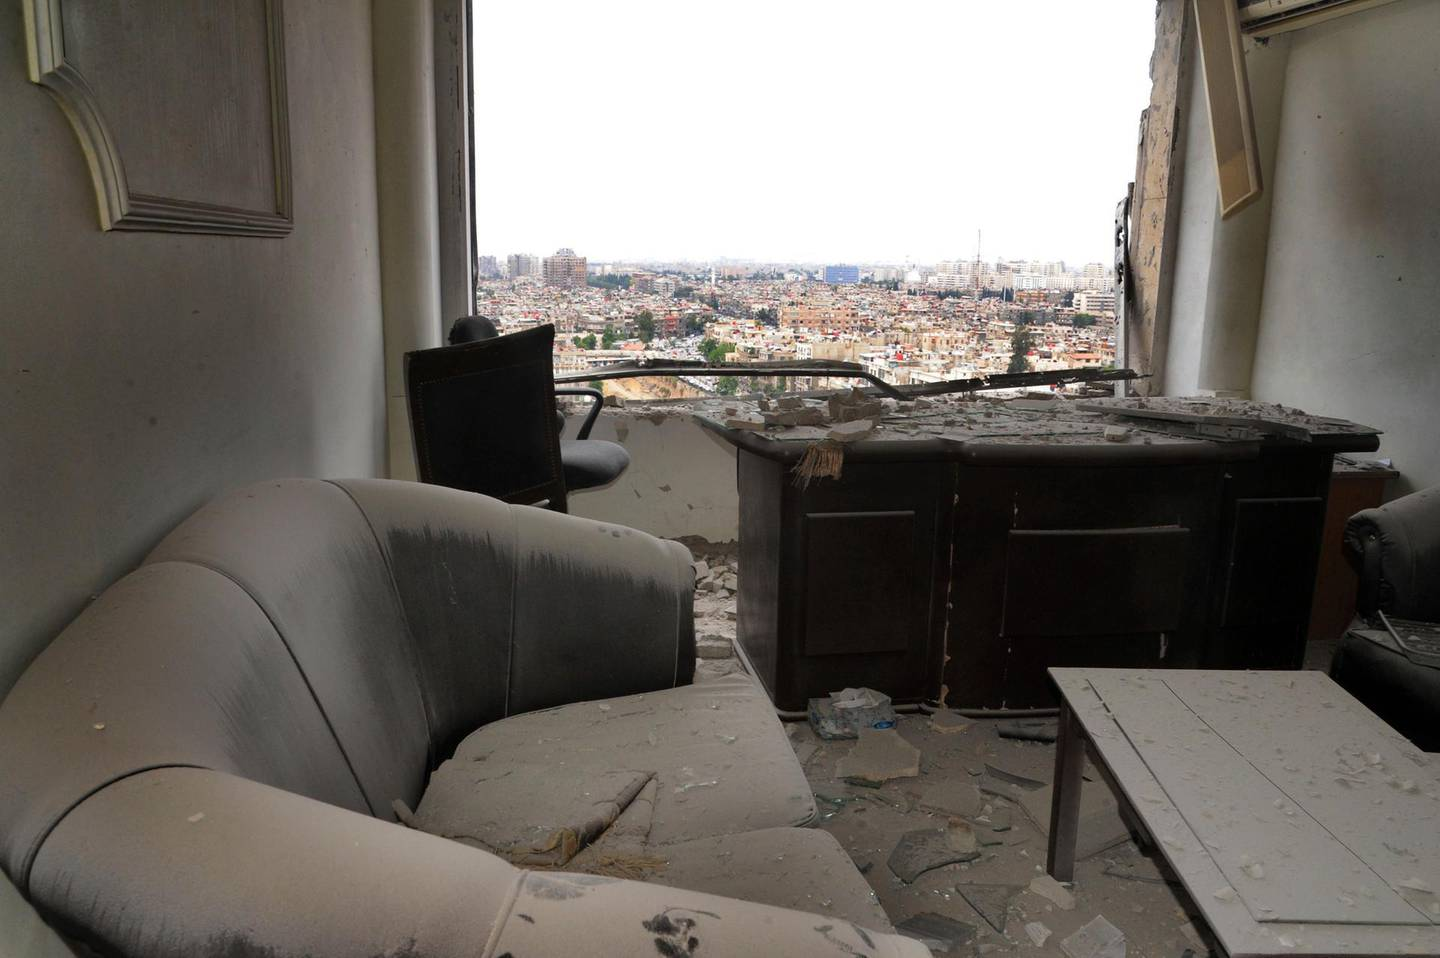 This photo released by the Syrian official news agency SANA, shows damage inside a office that was hit by shelling, apparently by Islamic State fighters, in Damascus, Syria, Wednesday, May 9, 2018. Militants fired three mortar shells on the center of Damascus Wednesday killing several persons and wounding 14, Syria's state news agency said. (SANA via AP)